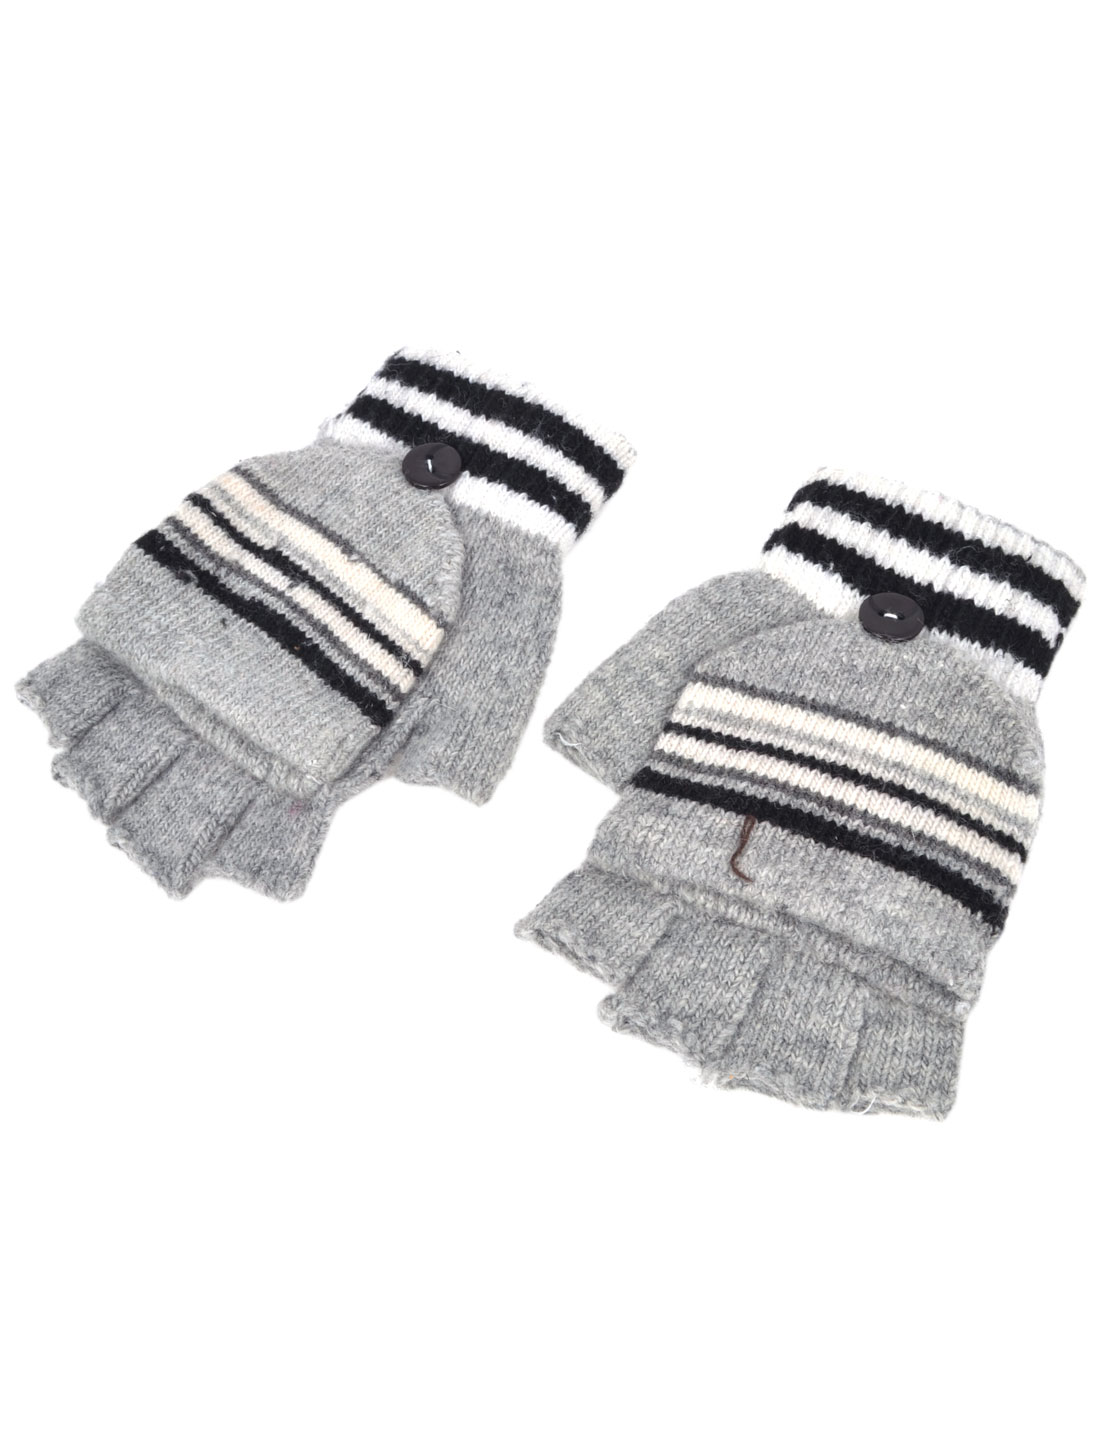 Unisex Striped Flap Cover Knitting Warm Half Fingers Gloves Gray Pair